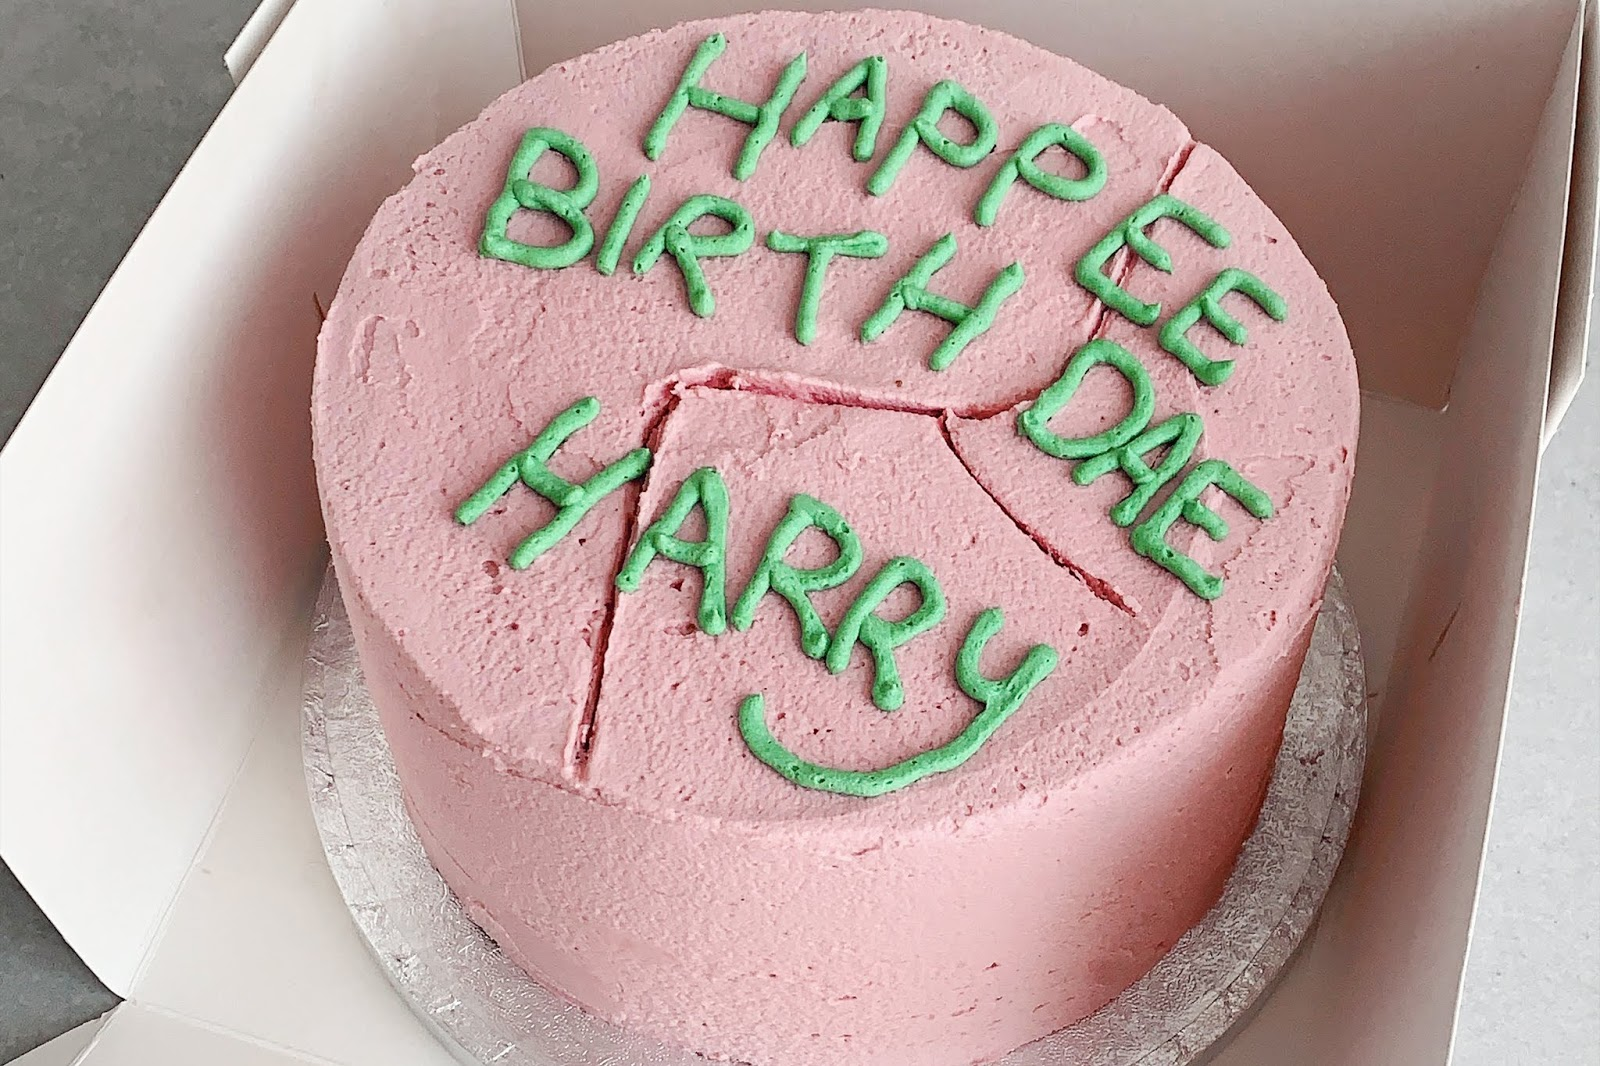 Harry Potter chocolate cake recipe